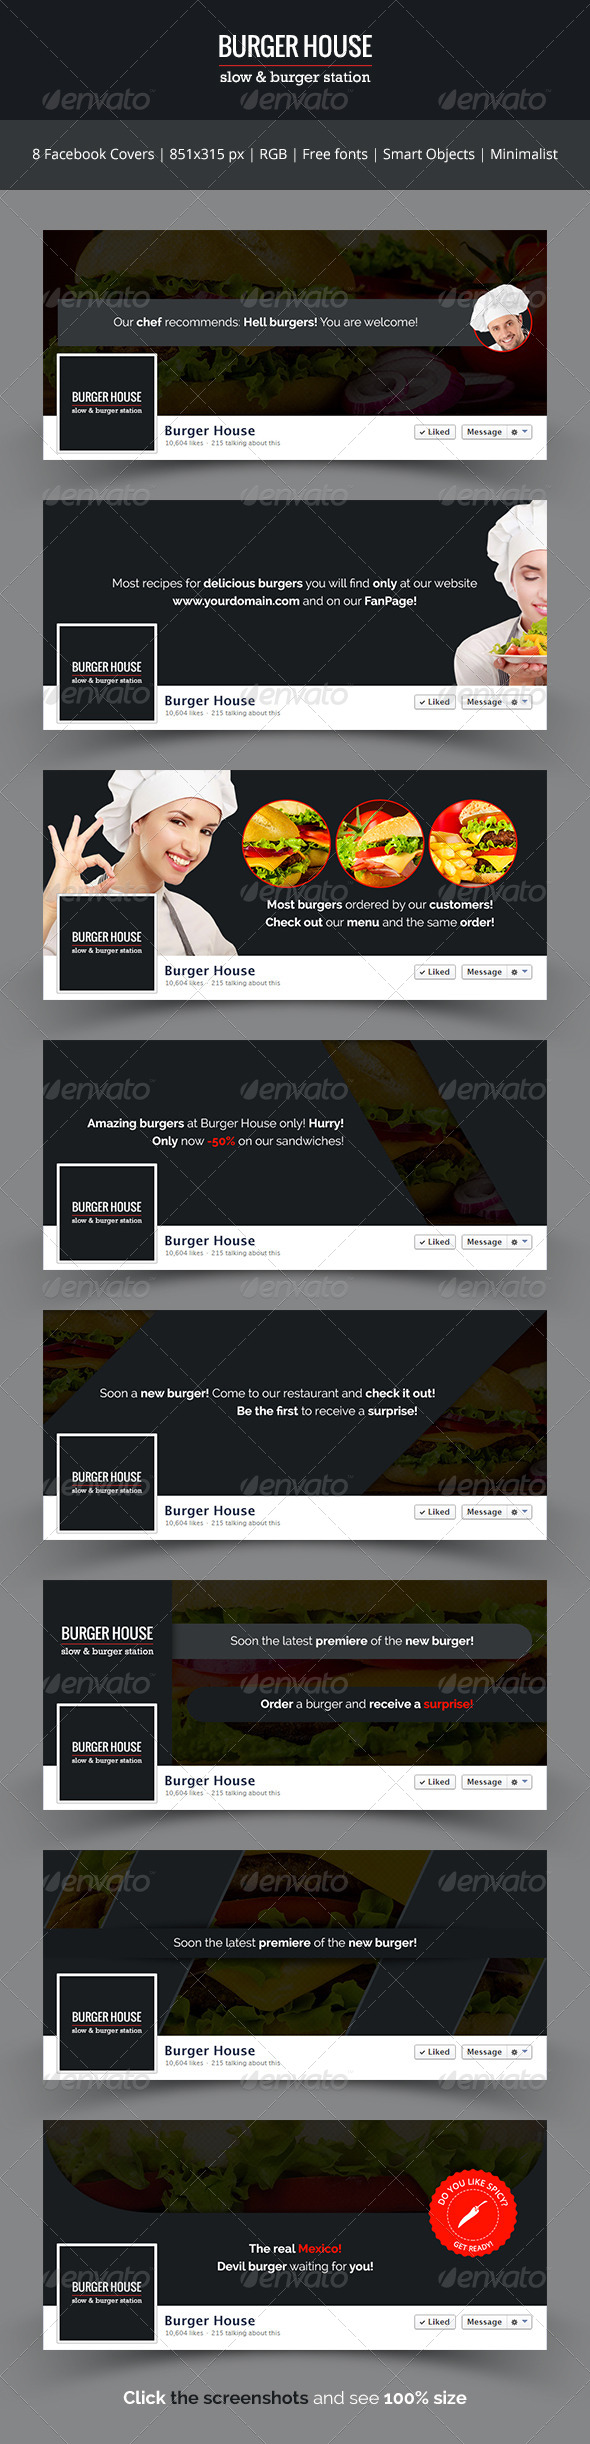 Burger House - Facebook Covers - Facebook Timeline Covers Social Media